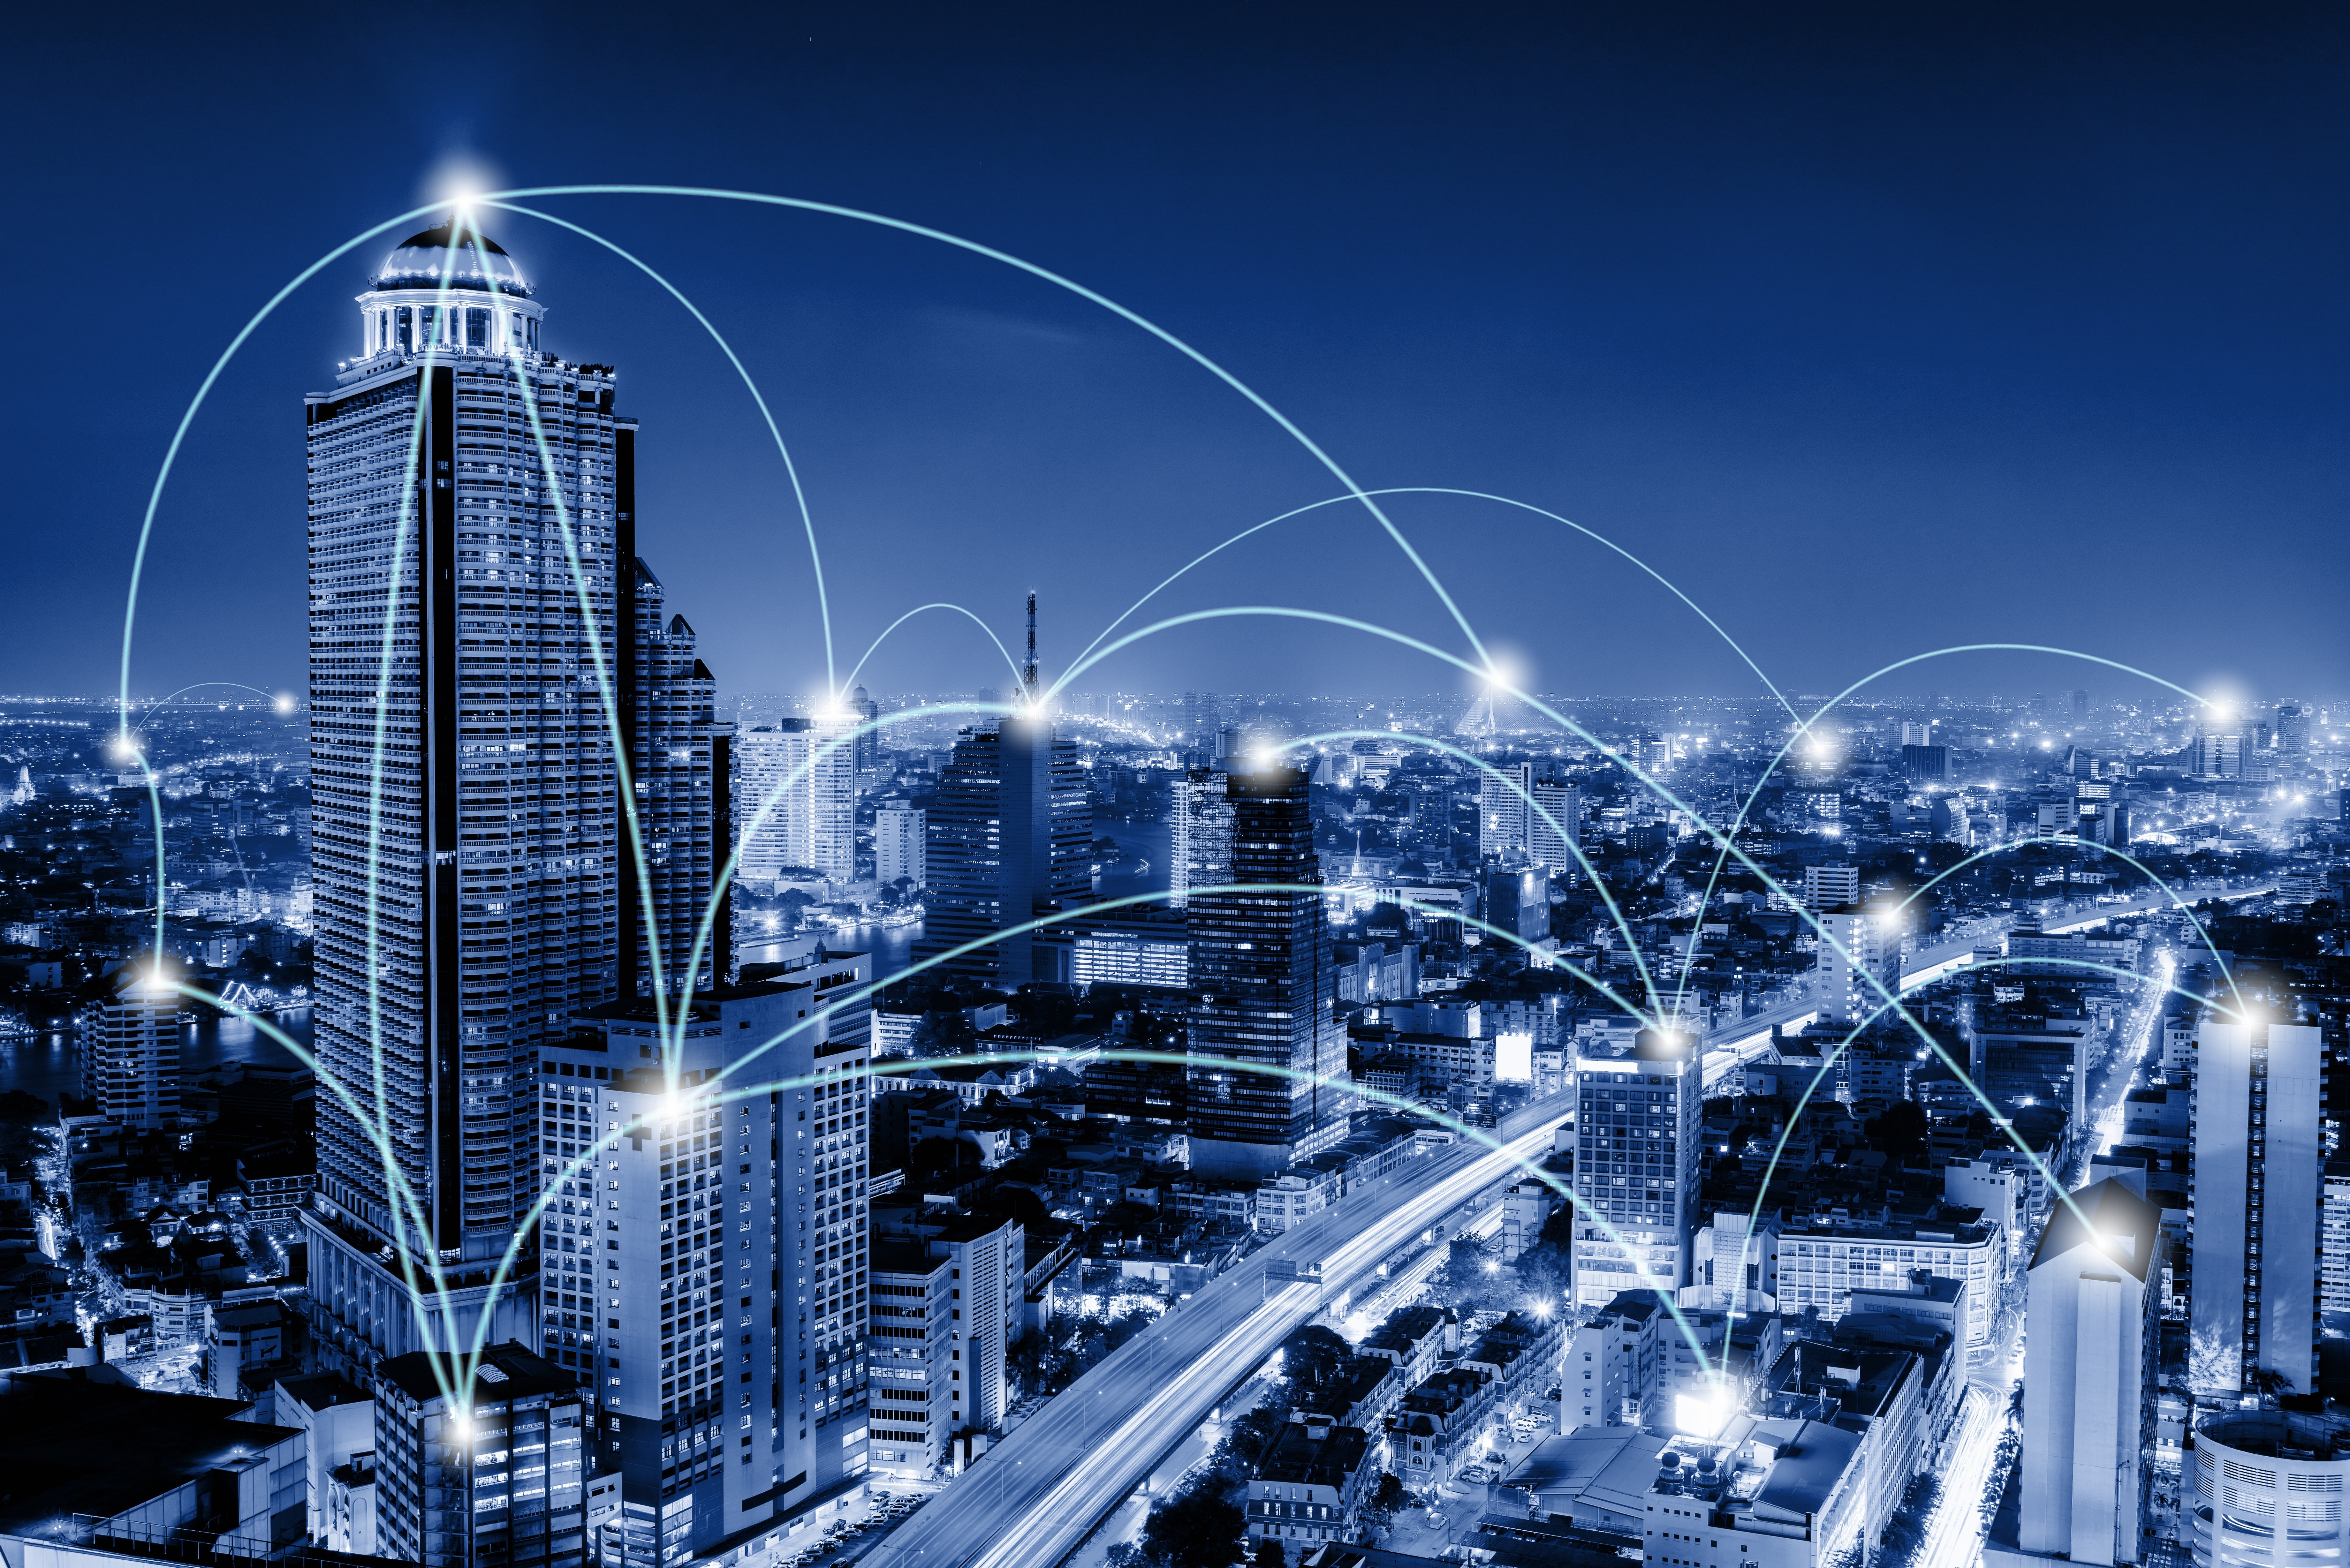 5G and Internet of Things (IoT)